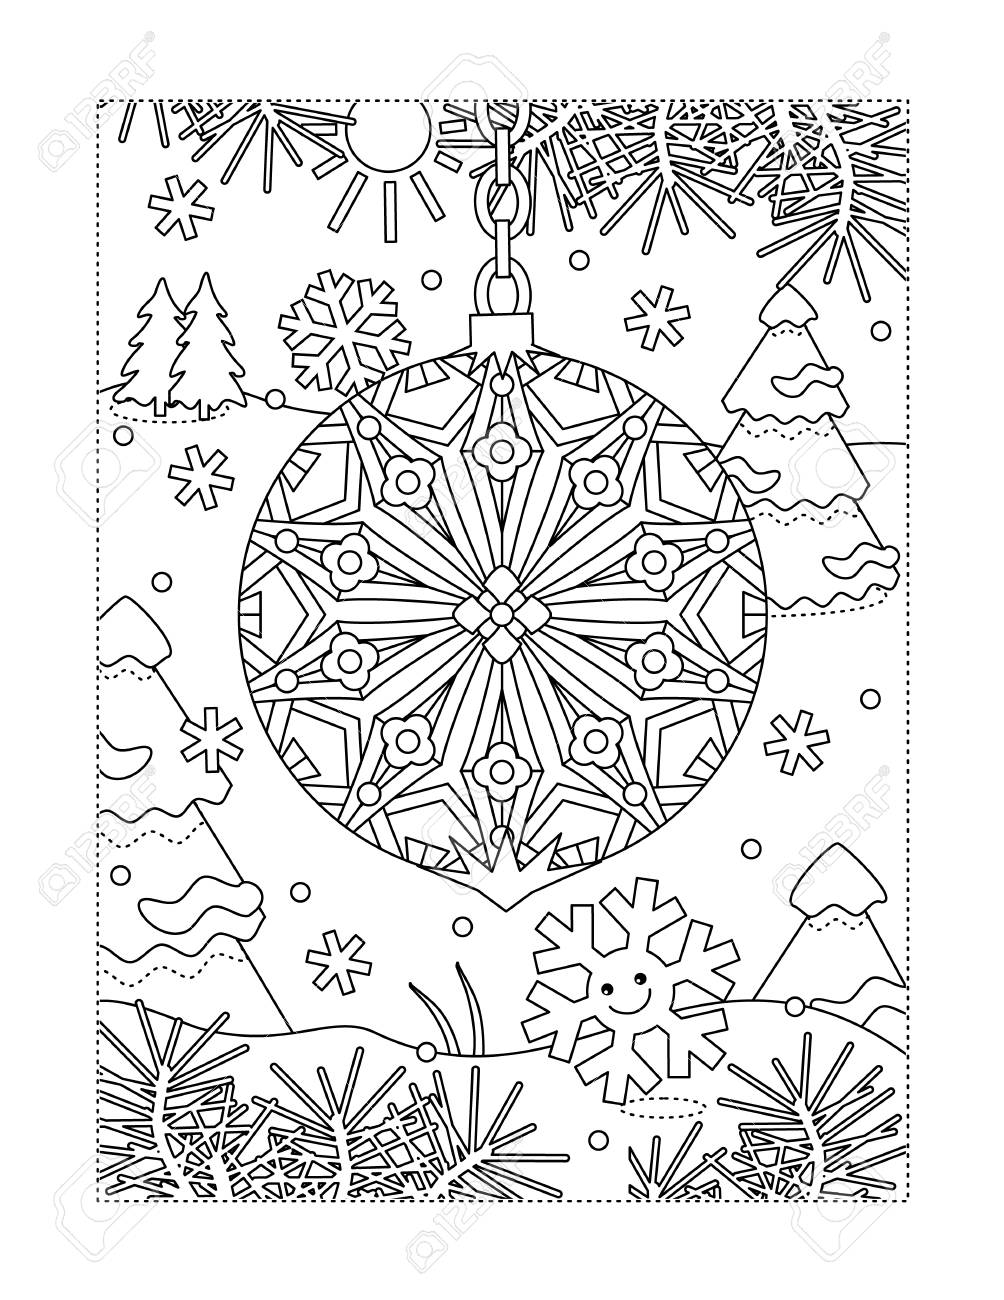 Winter Holidays Joy Themed Coloring Page With Beautiful Christmas Royalty Free Cliparts Vectors And Stock Illustration Image 121550243